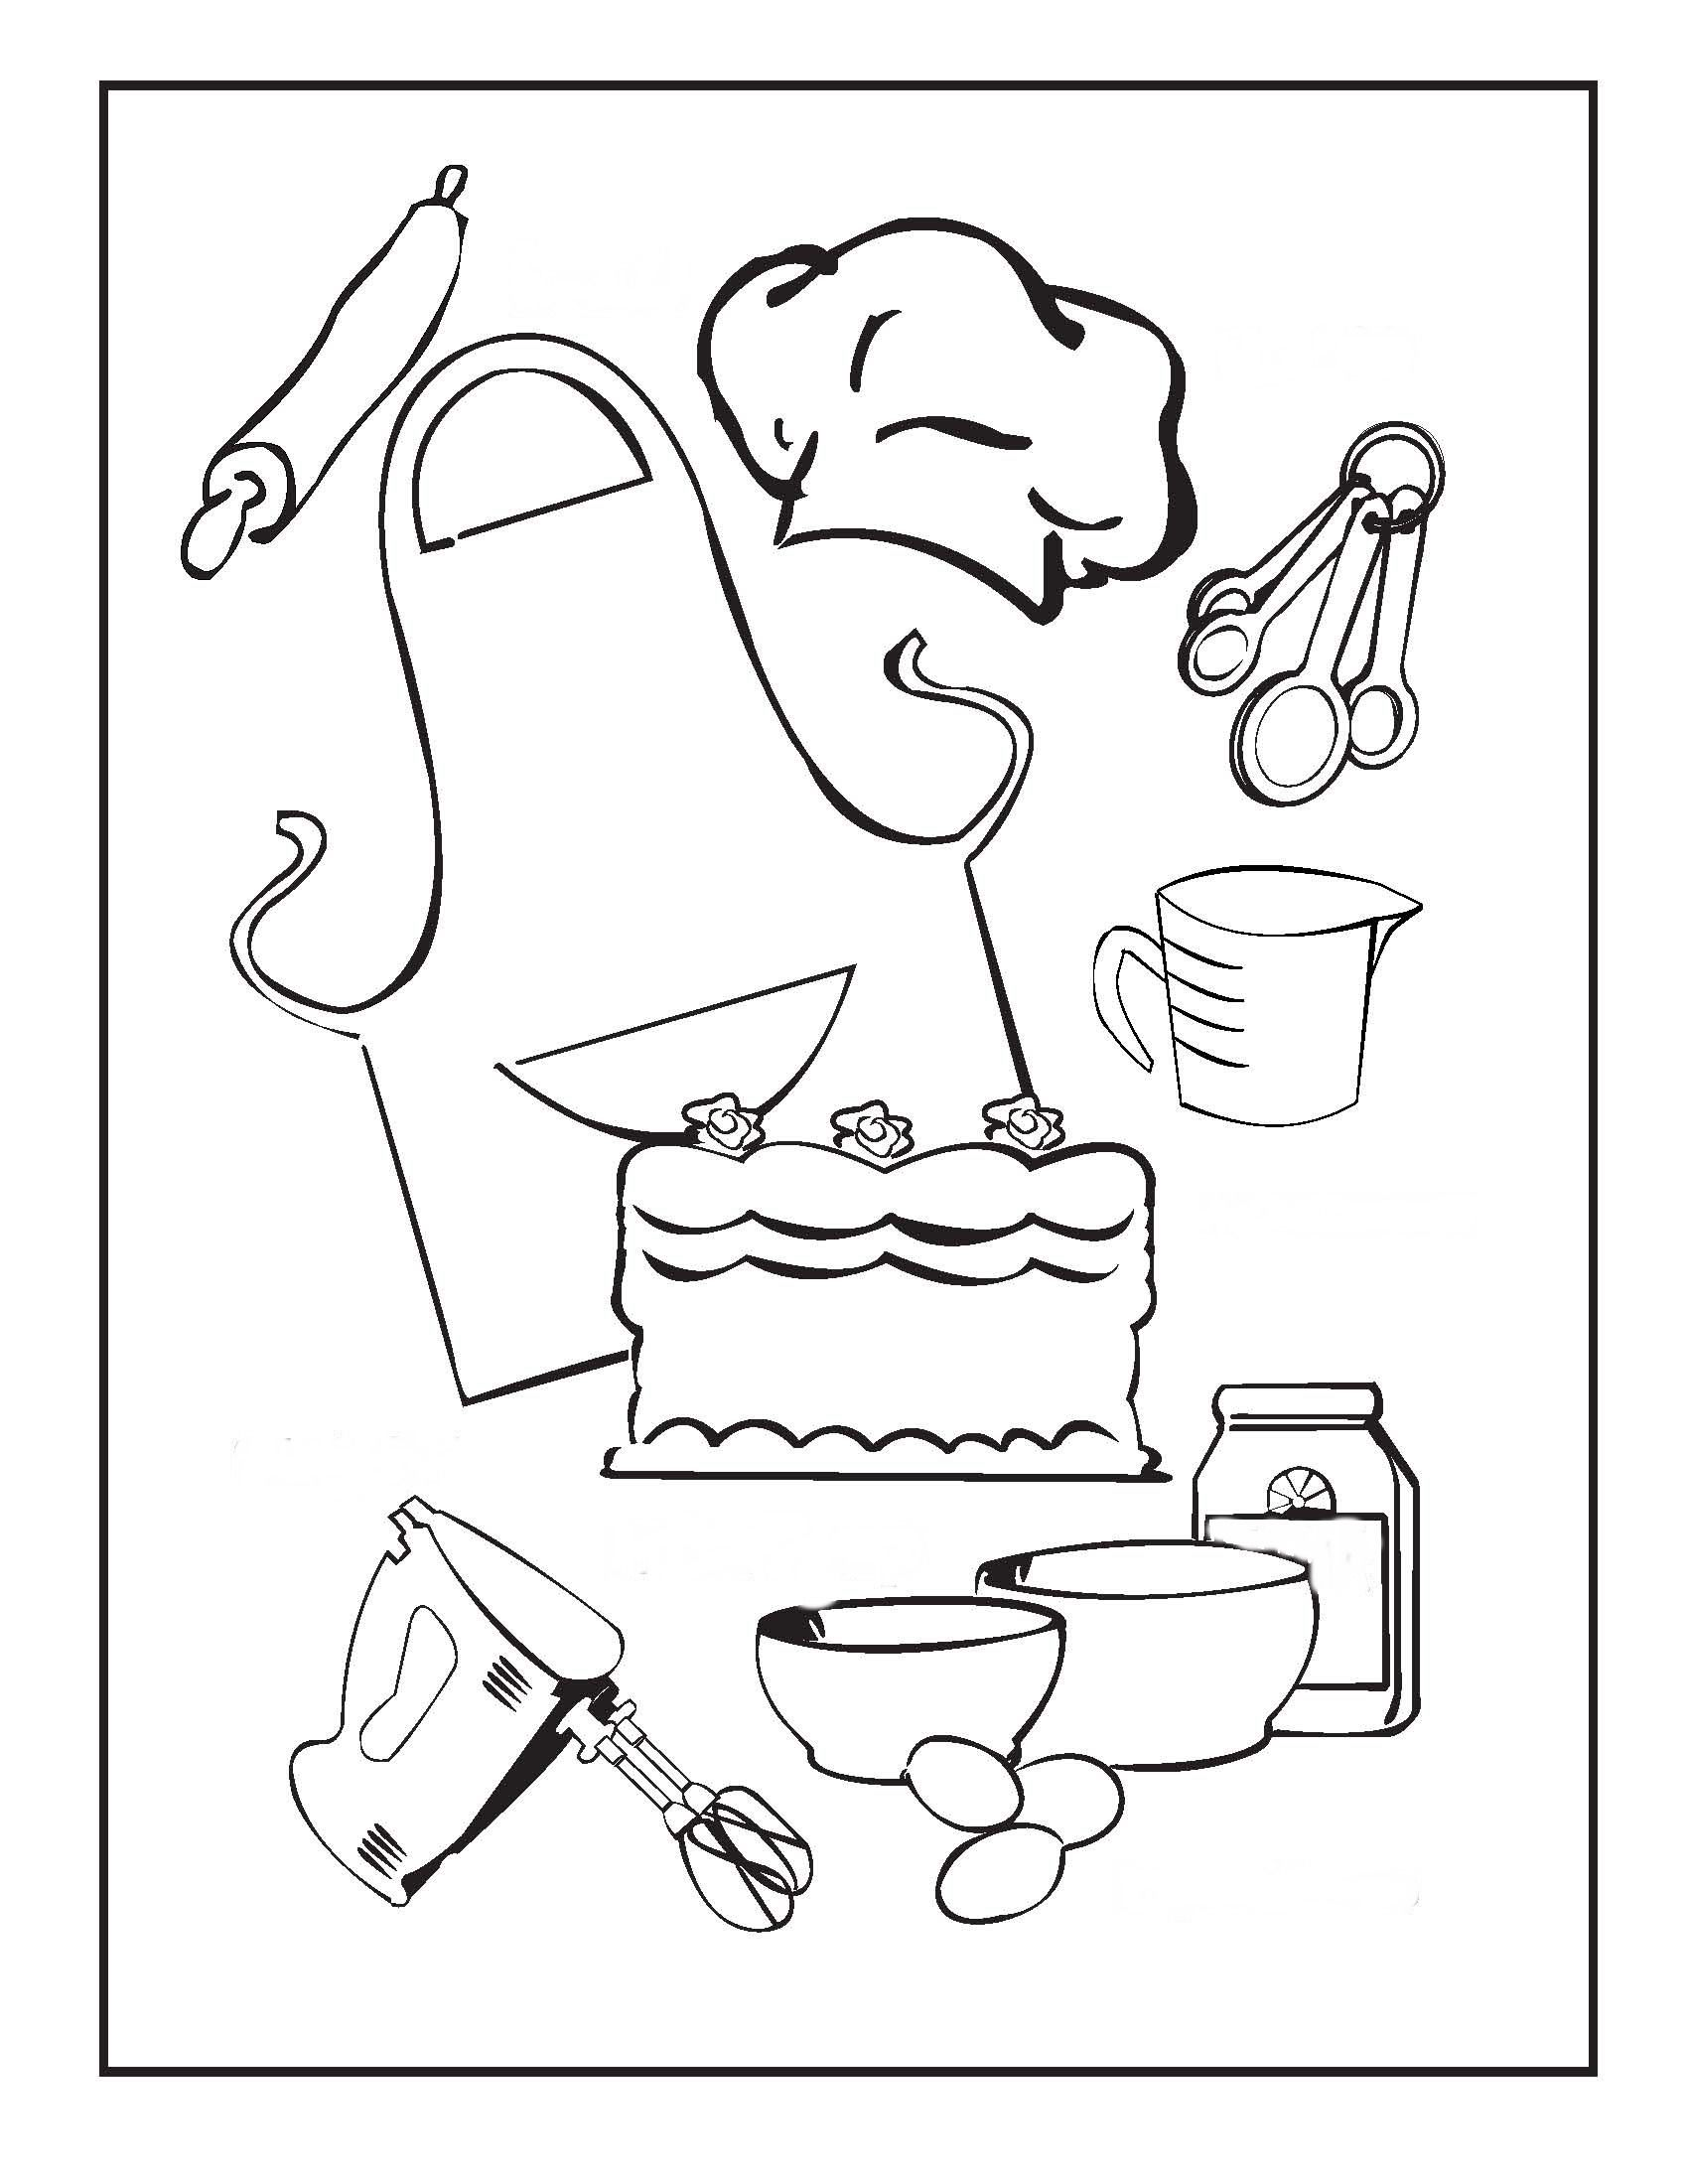 baking coloring pages Cooking and Baking Coloring Pages – Birthday Printable | Recipes  baking coloring pages